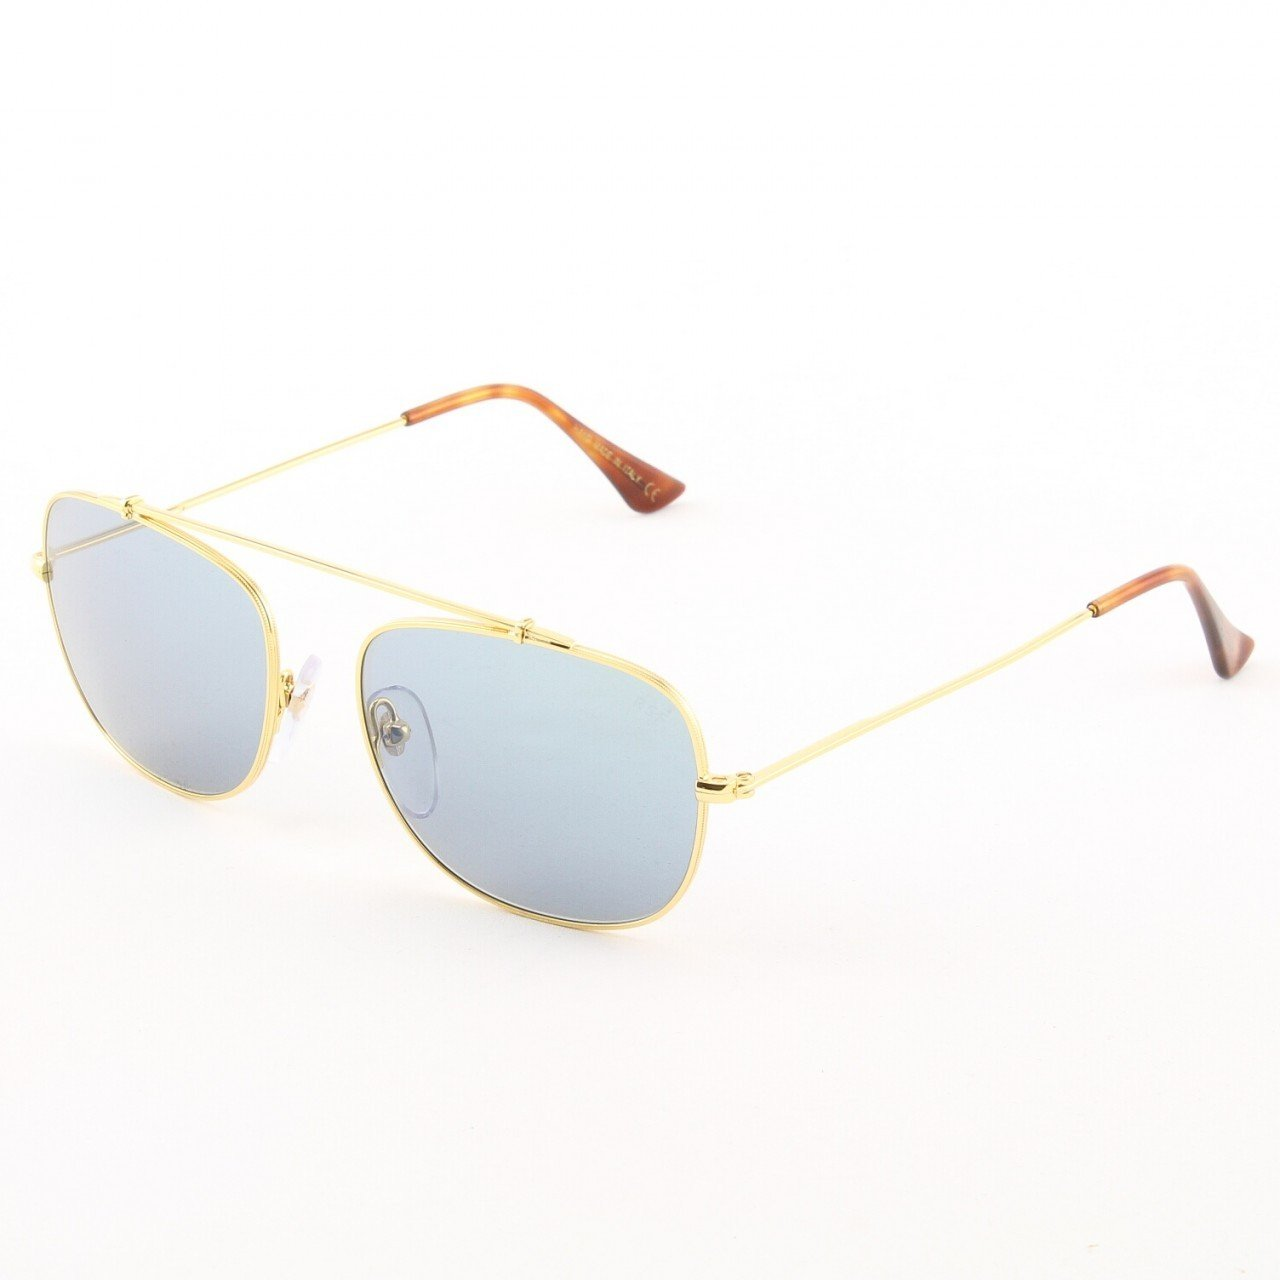 Super Primo 725/2M Sunglasses Gold Brown Havana with Blue Zeiss Lenses by RETROSUPERFUTURE